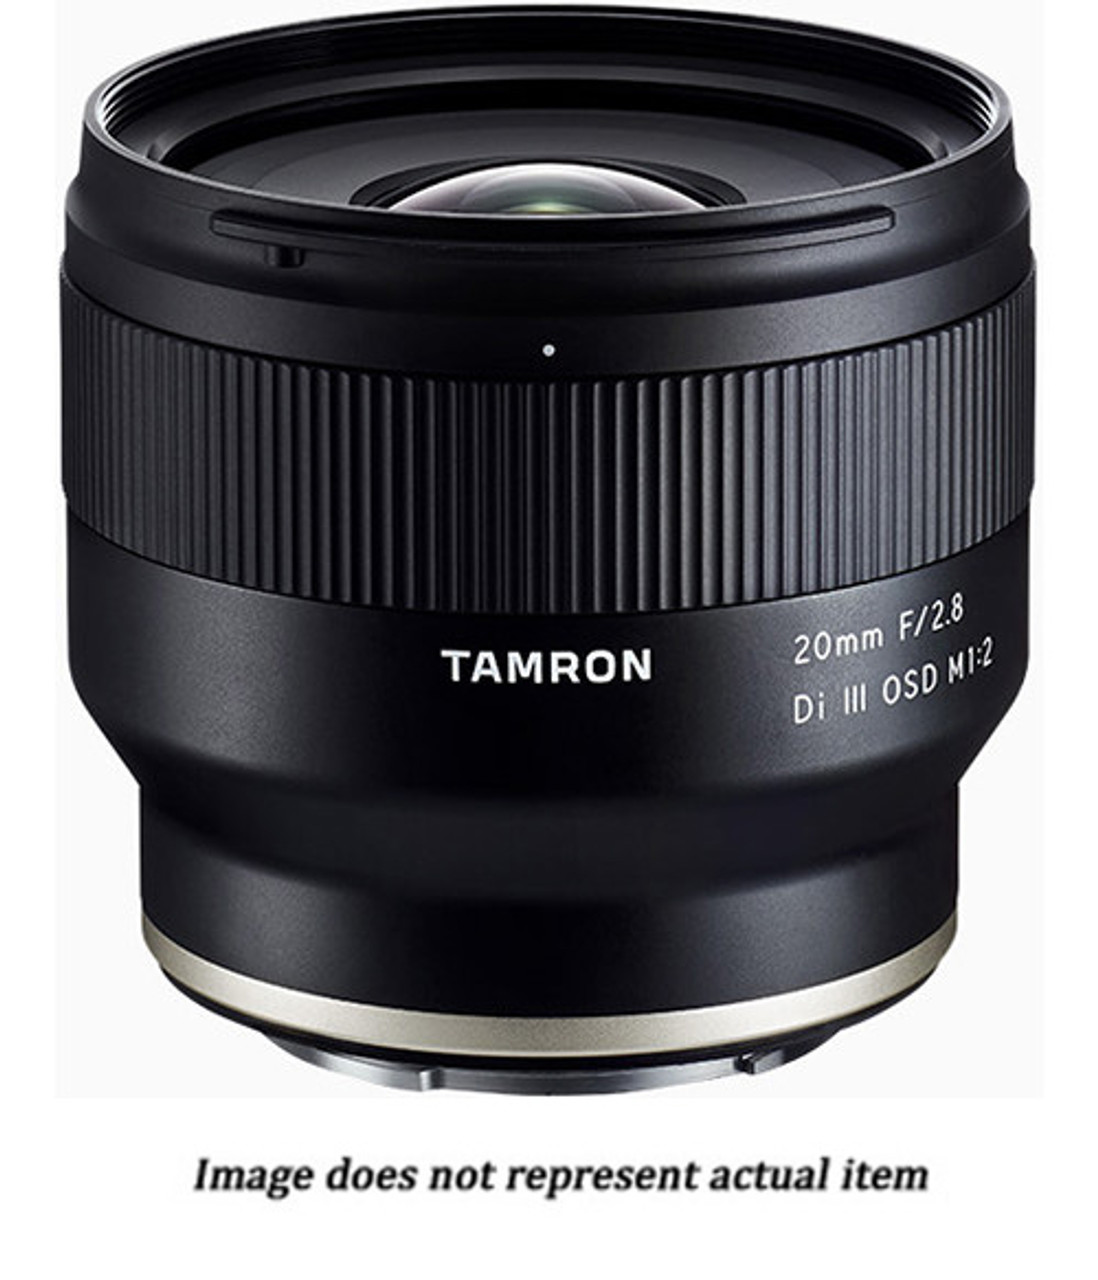 Tamron 20mm f/2.8 Di III OSD M 1:2 Lens for Sony E (USED) - S/N 004146